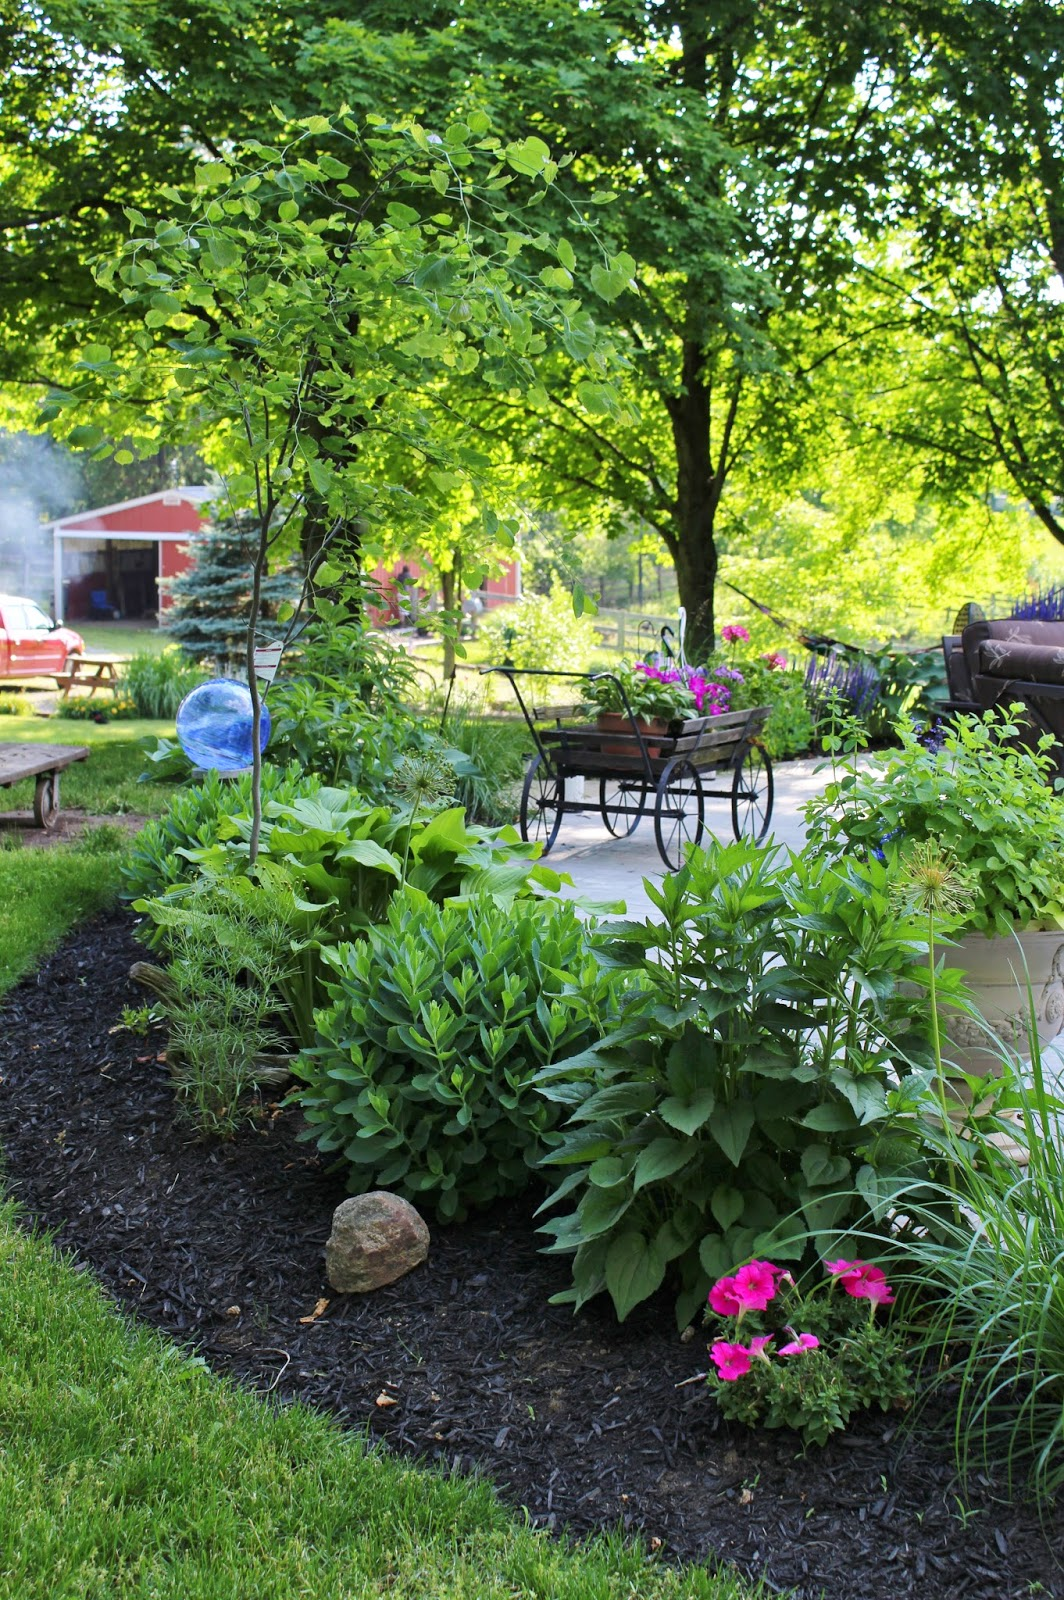 Building A Patio Fire Pit On Concrete: ~Ohio Thoughts~: Building A Patio